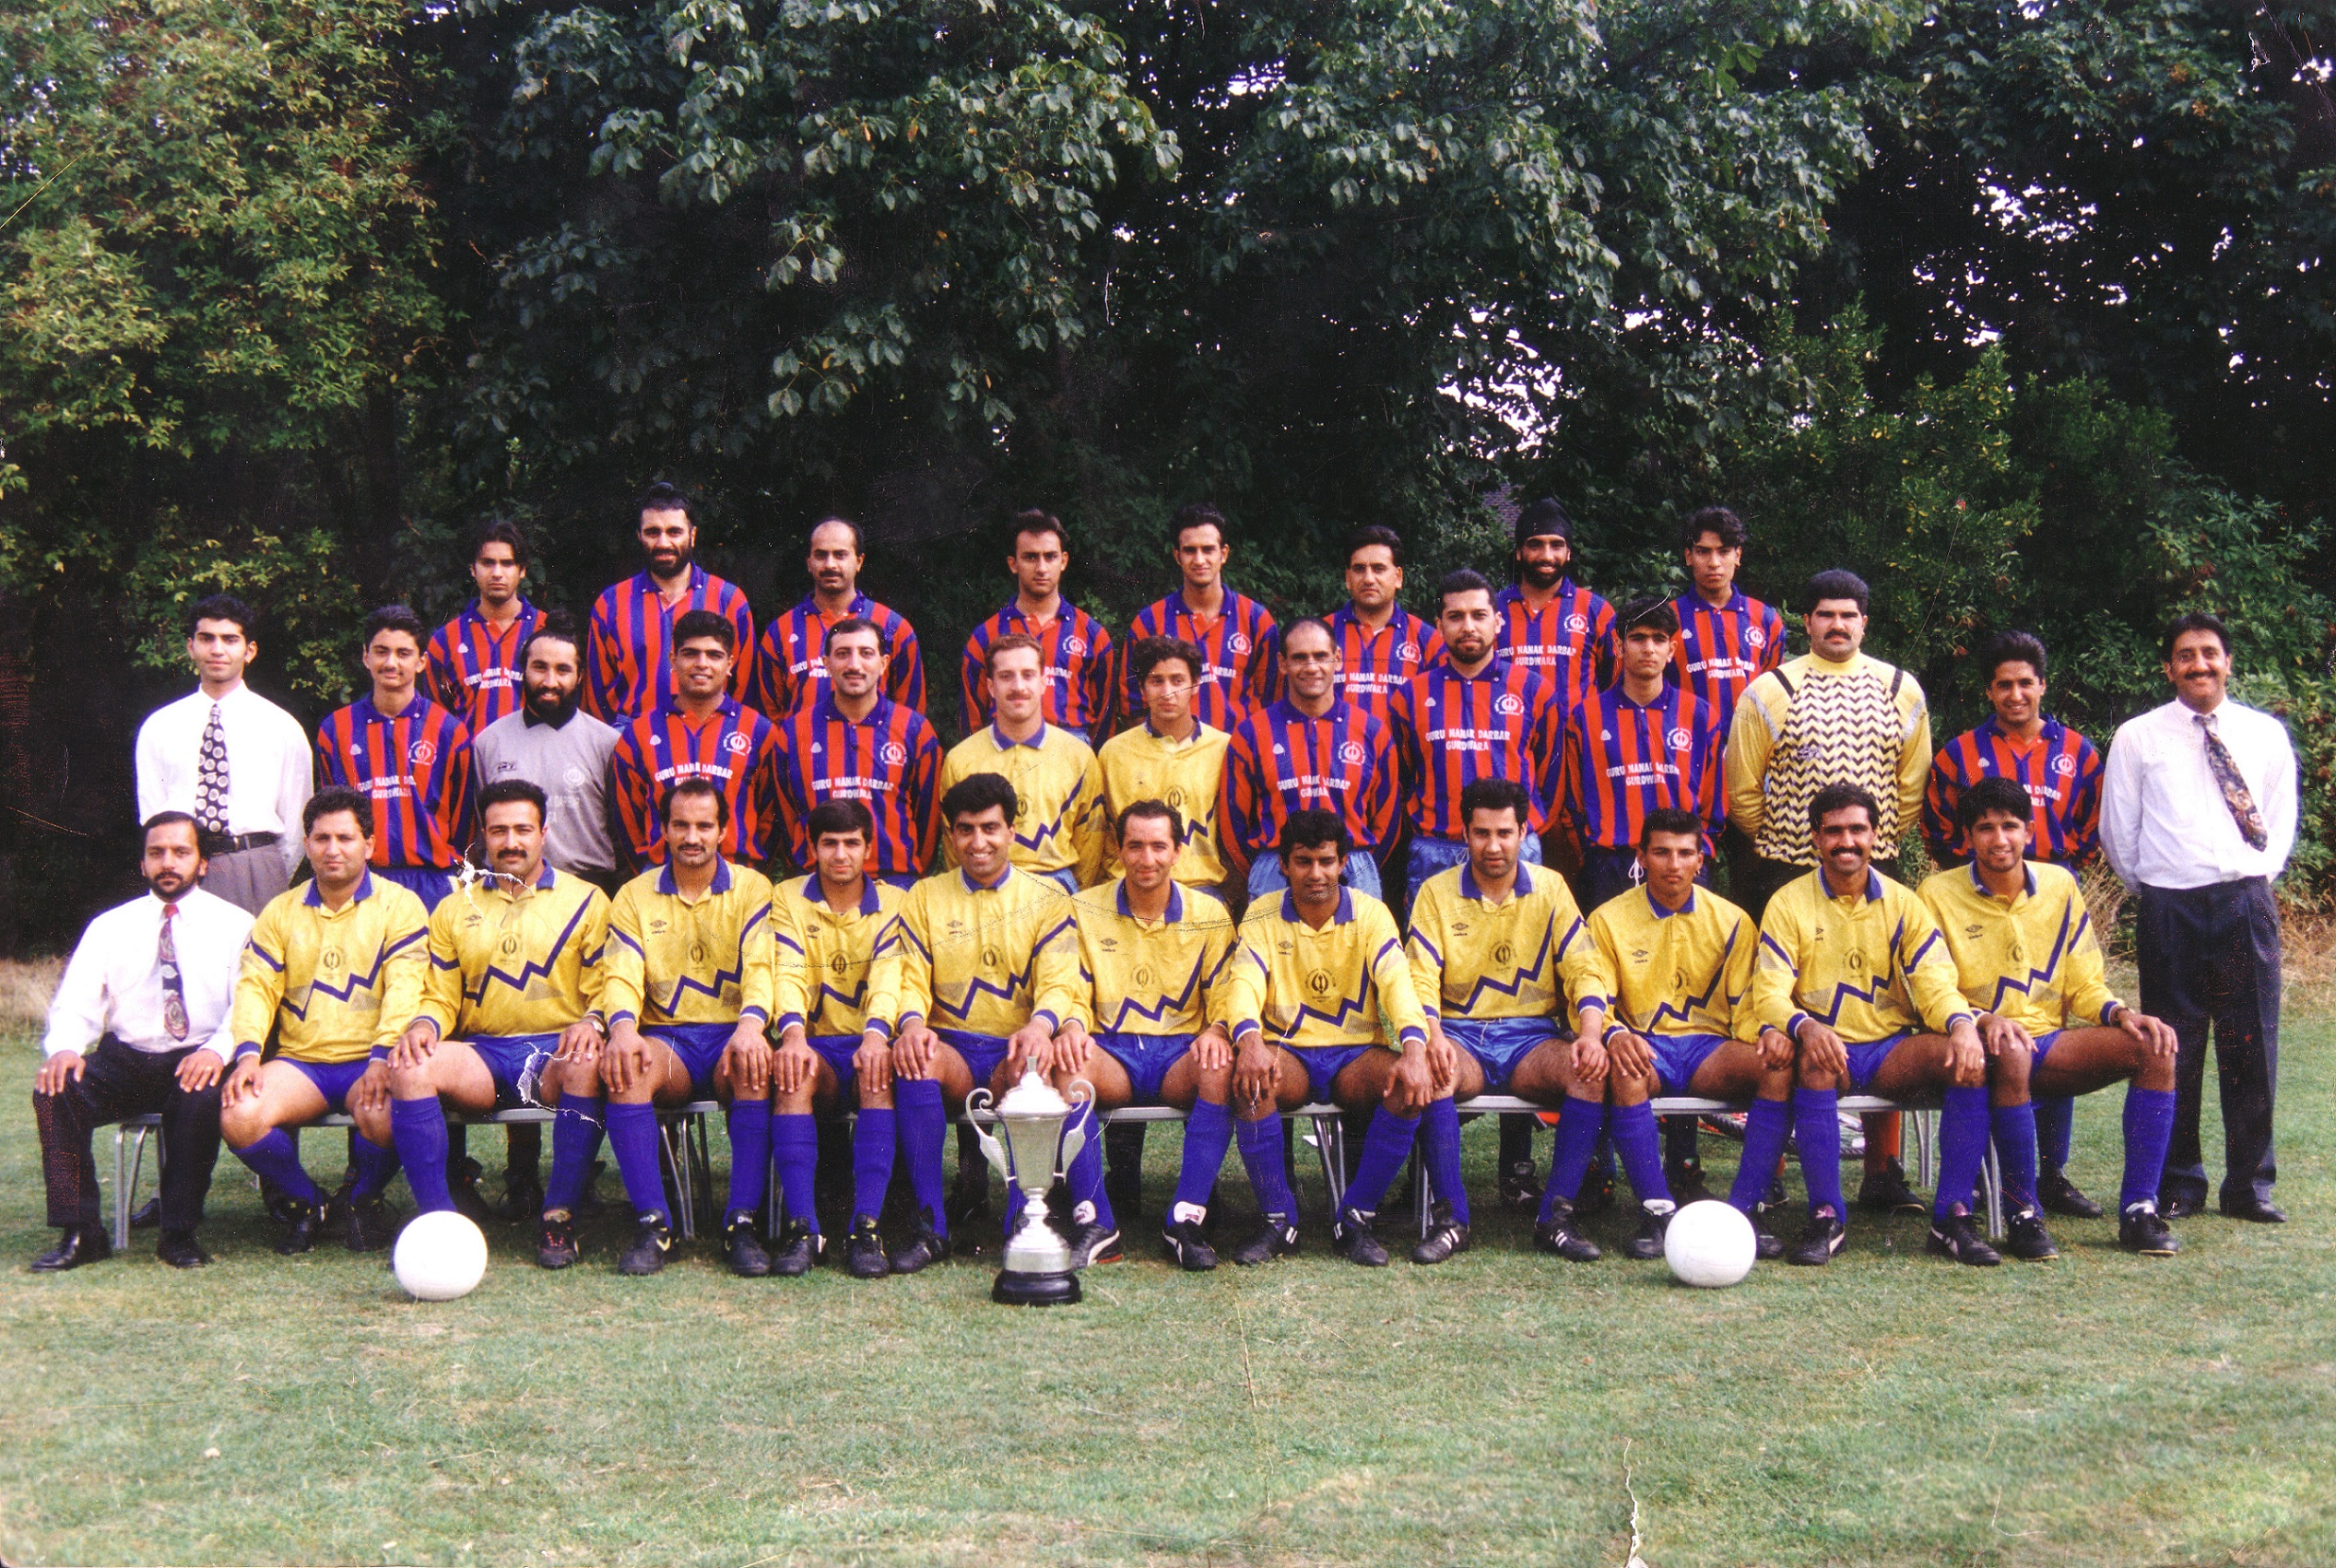 Saturday A and B Squad photo 1990/91 season